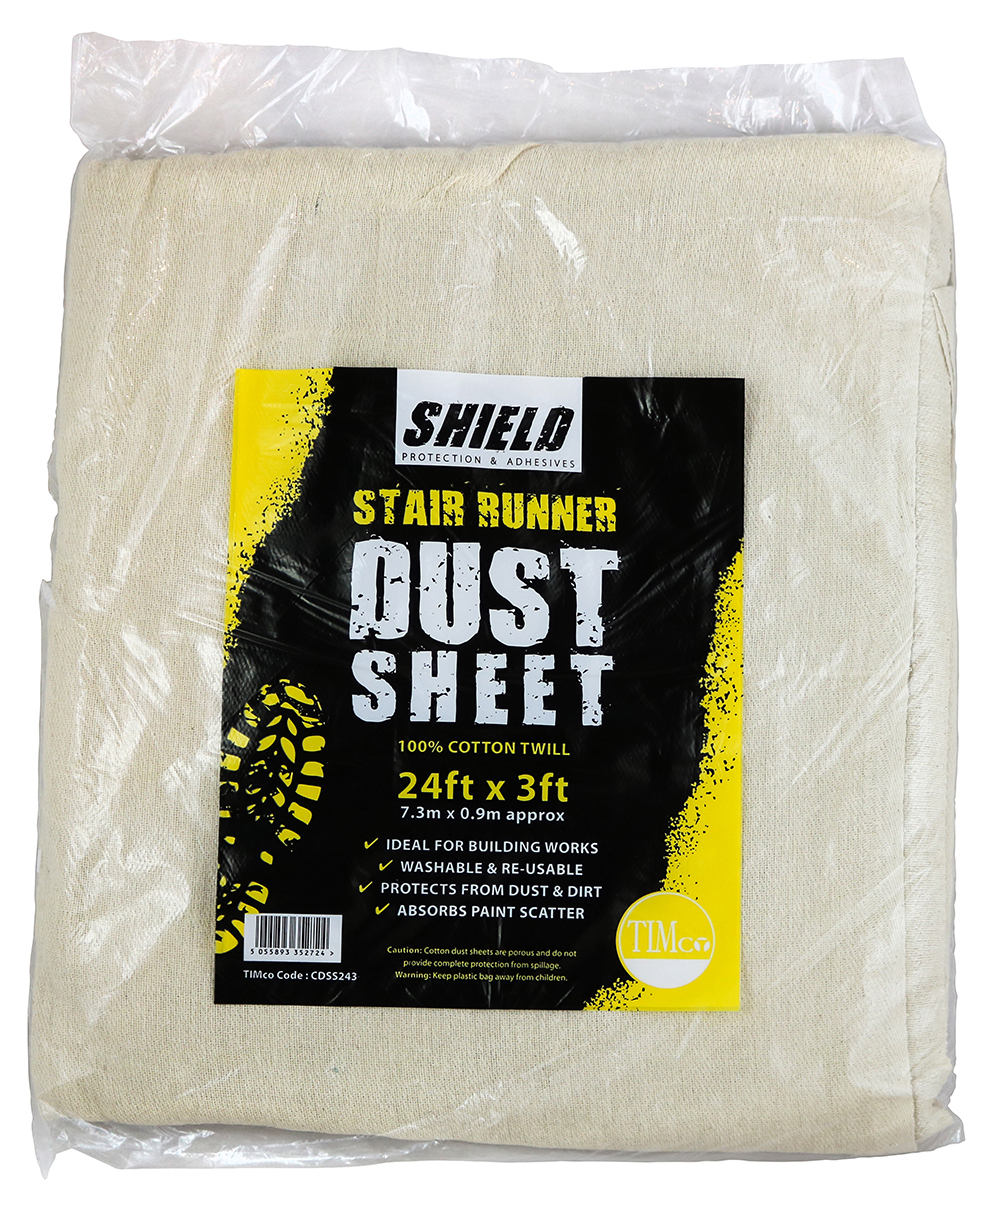 Shield Dust Sheet-Stair Runner 24ft x 3ft